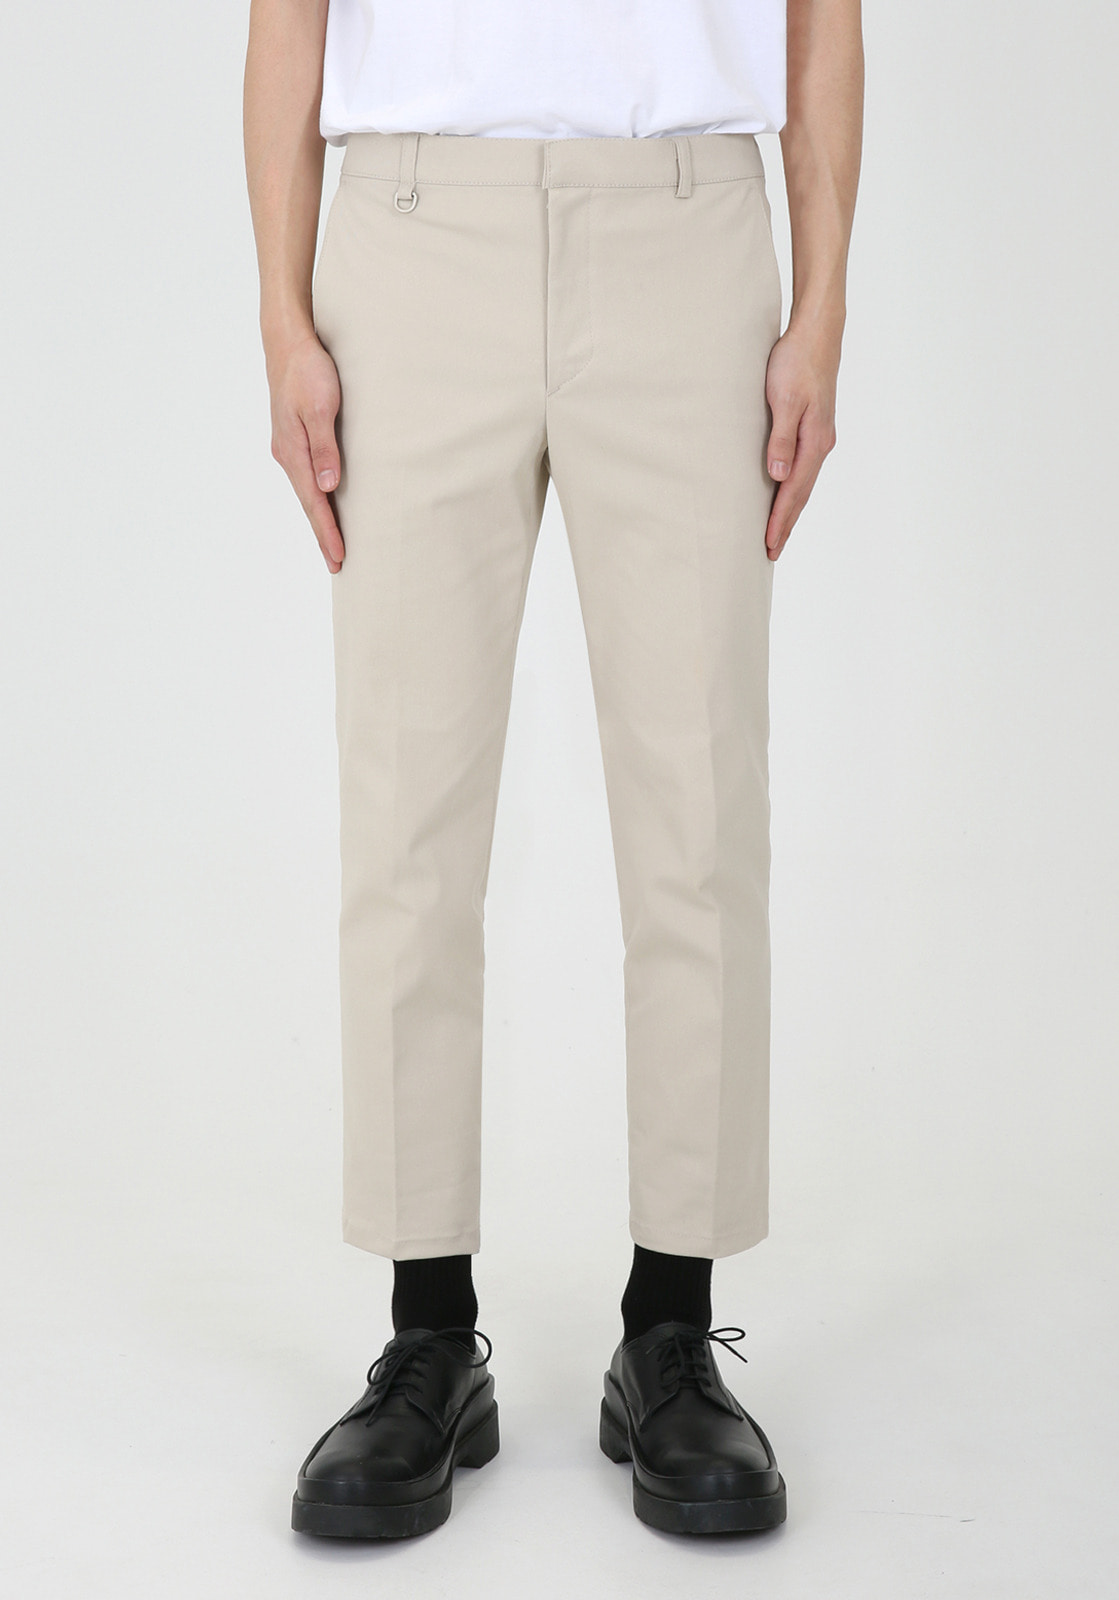 V311 JAMES BANDDING CROP CHINO PANTS  BEIGE